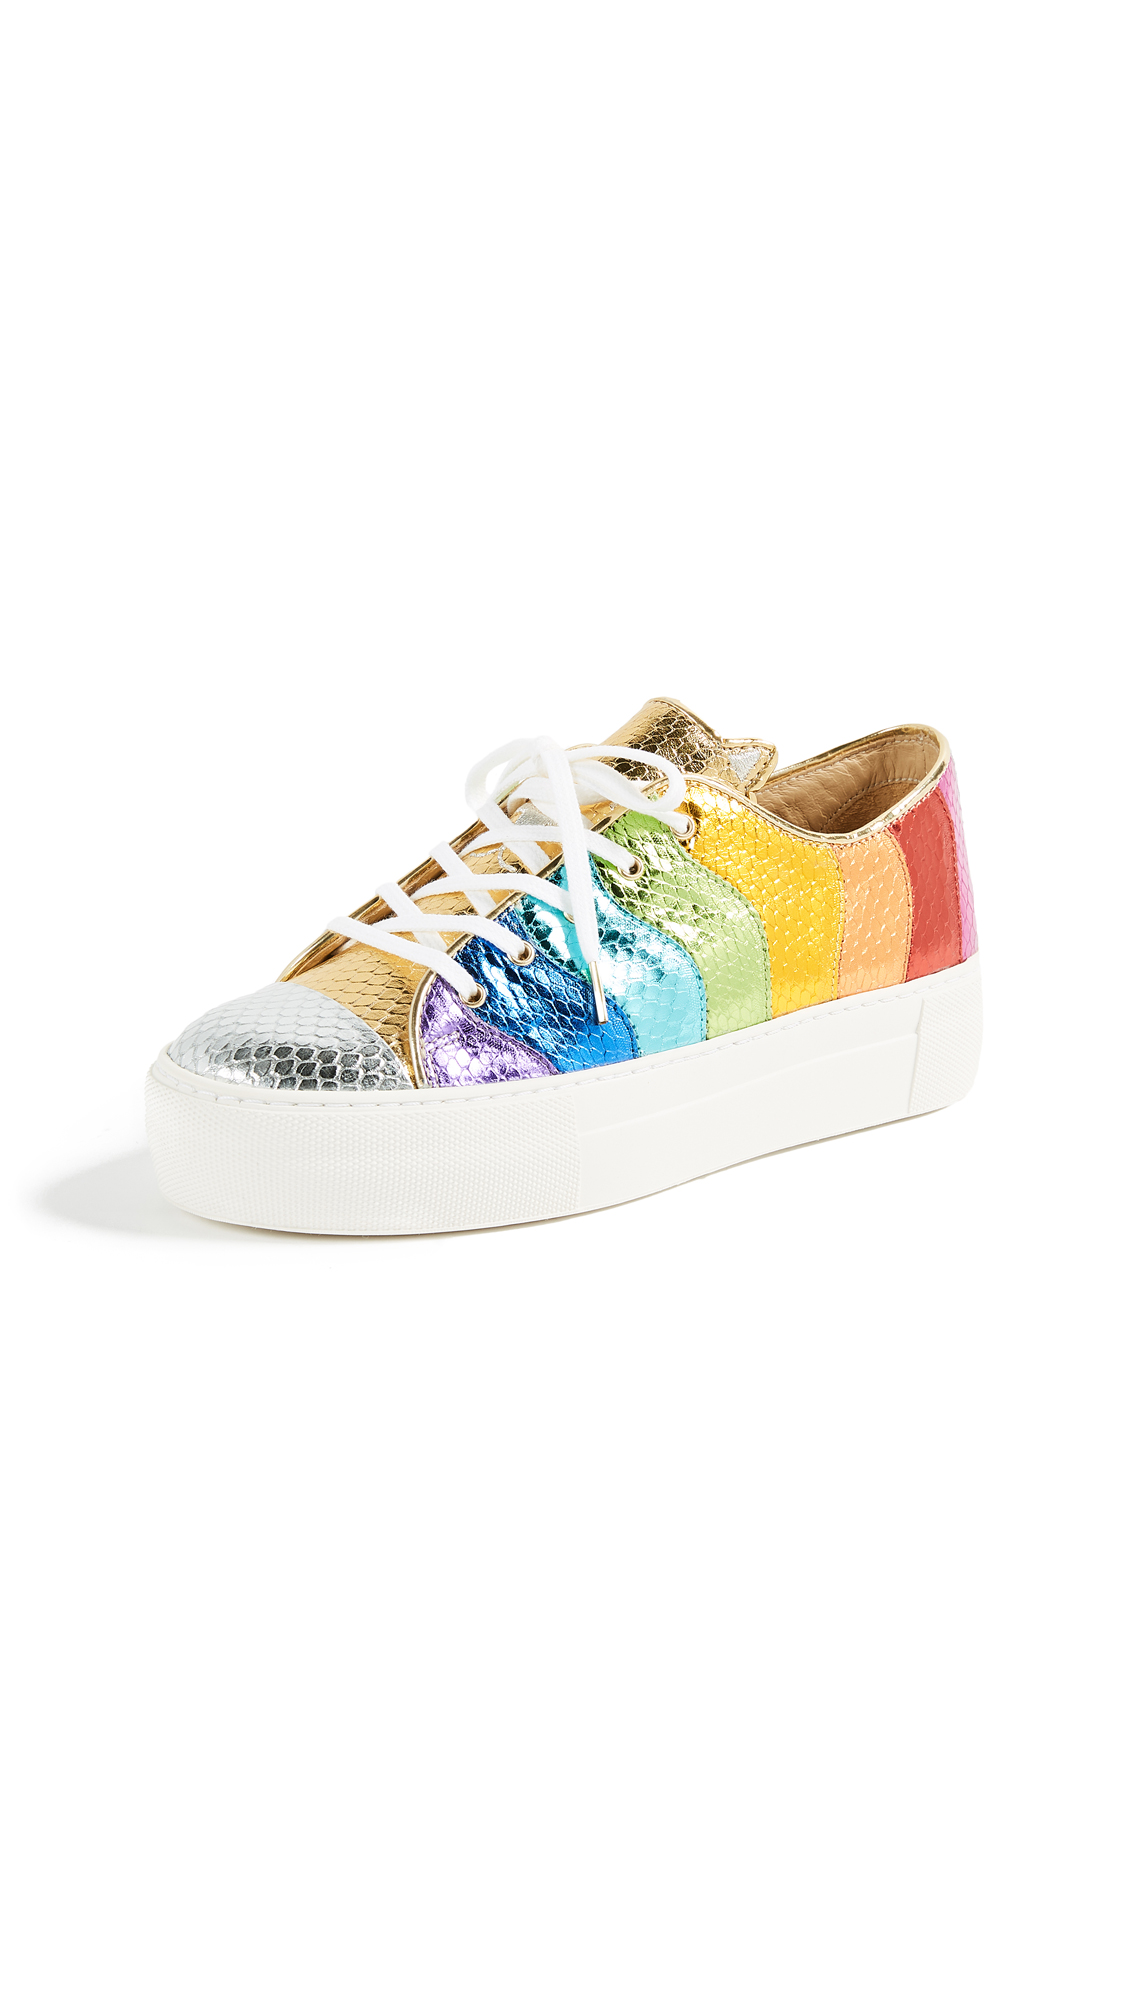 Charlotte Olympia Purrfect Sneakers - Multi